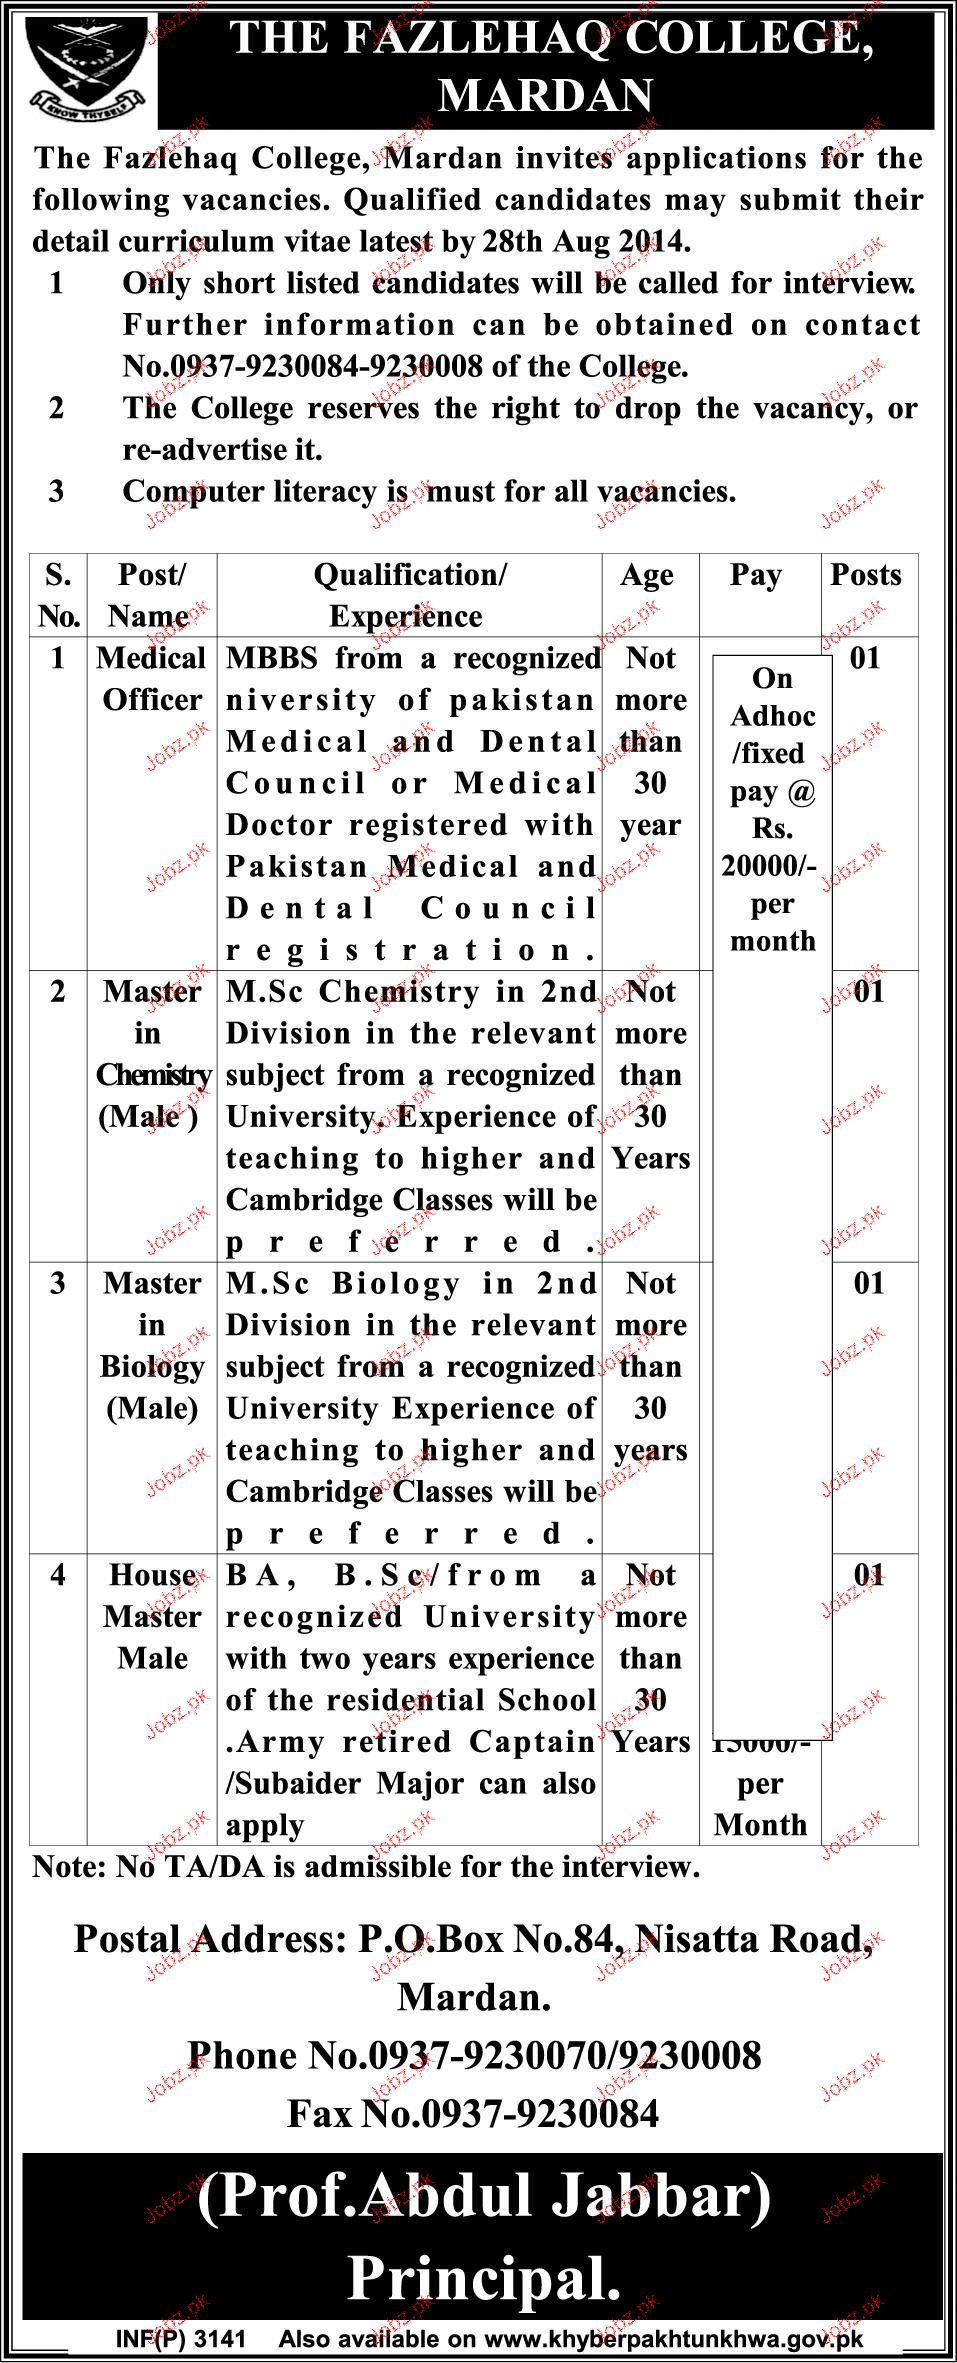 Medical Officers, Master Chemistry Job Opportunity